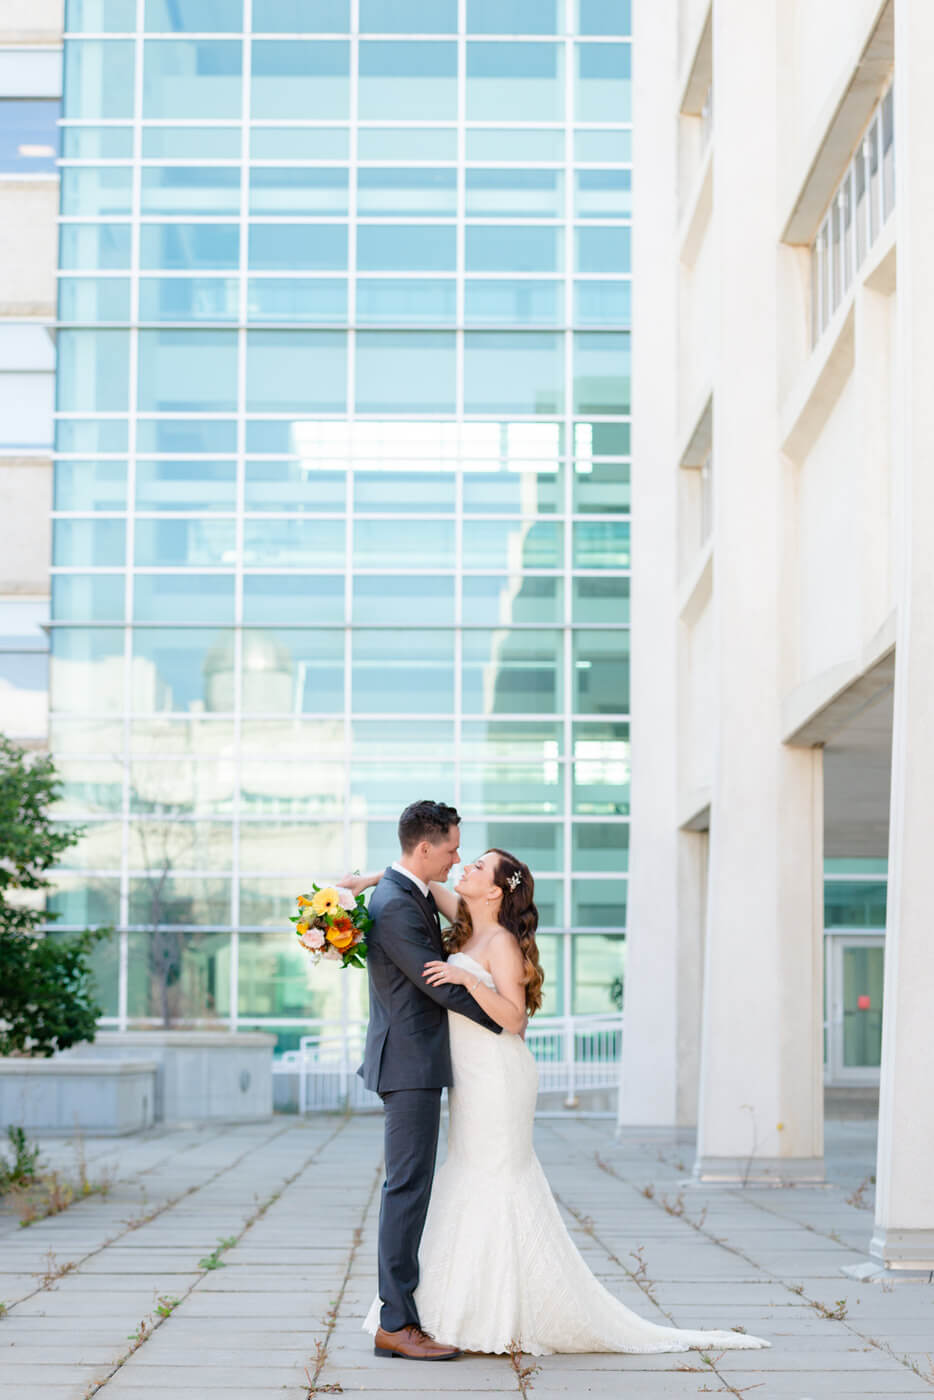 Tim & Jennelle - Bride & Groom first look at University of Regina